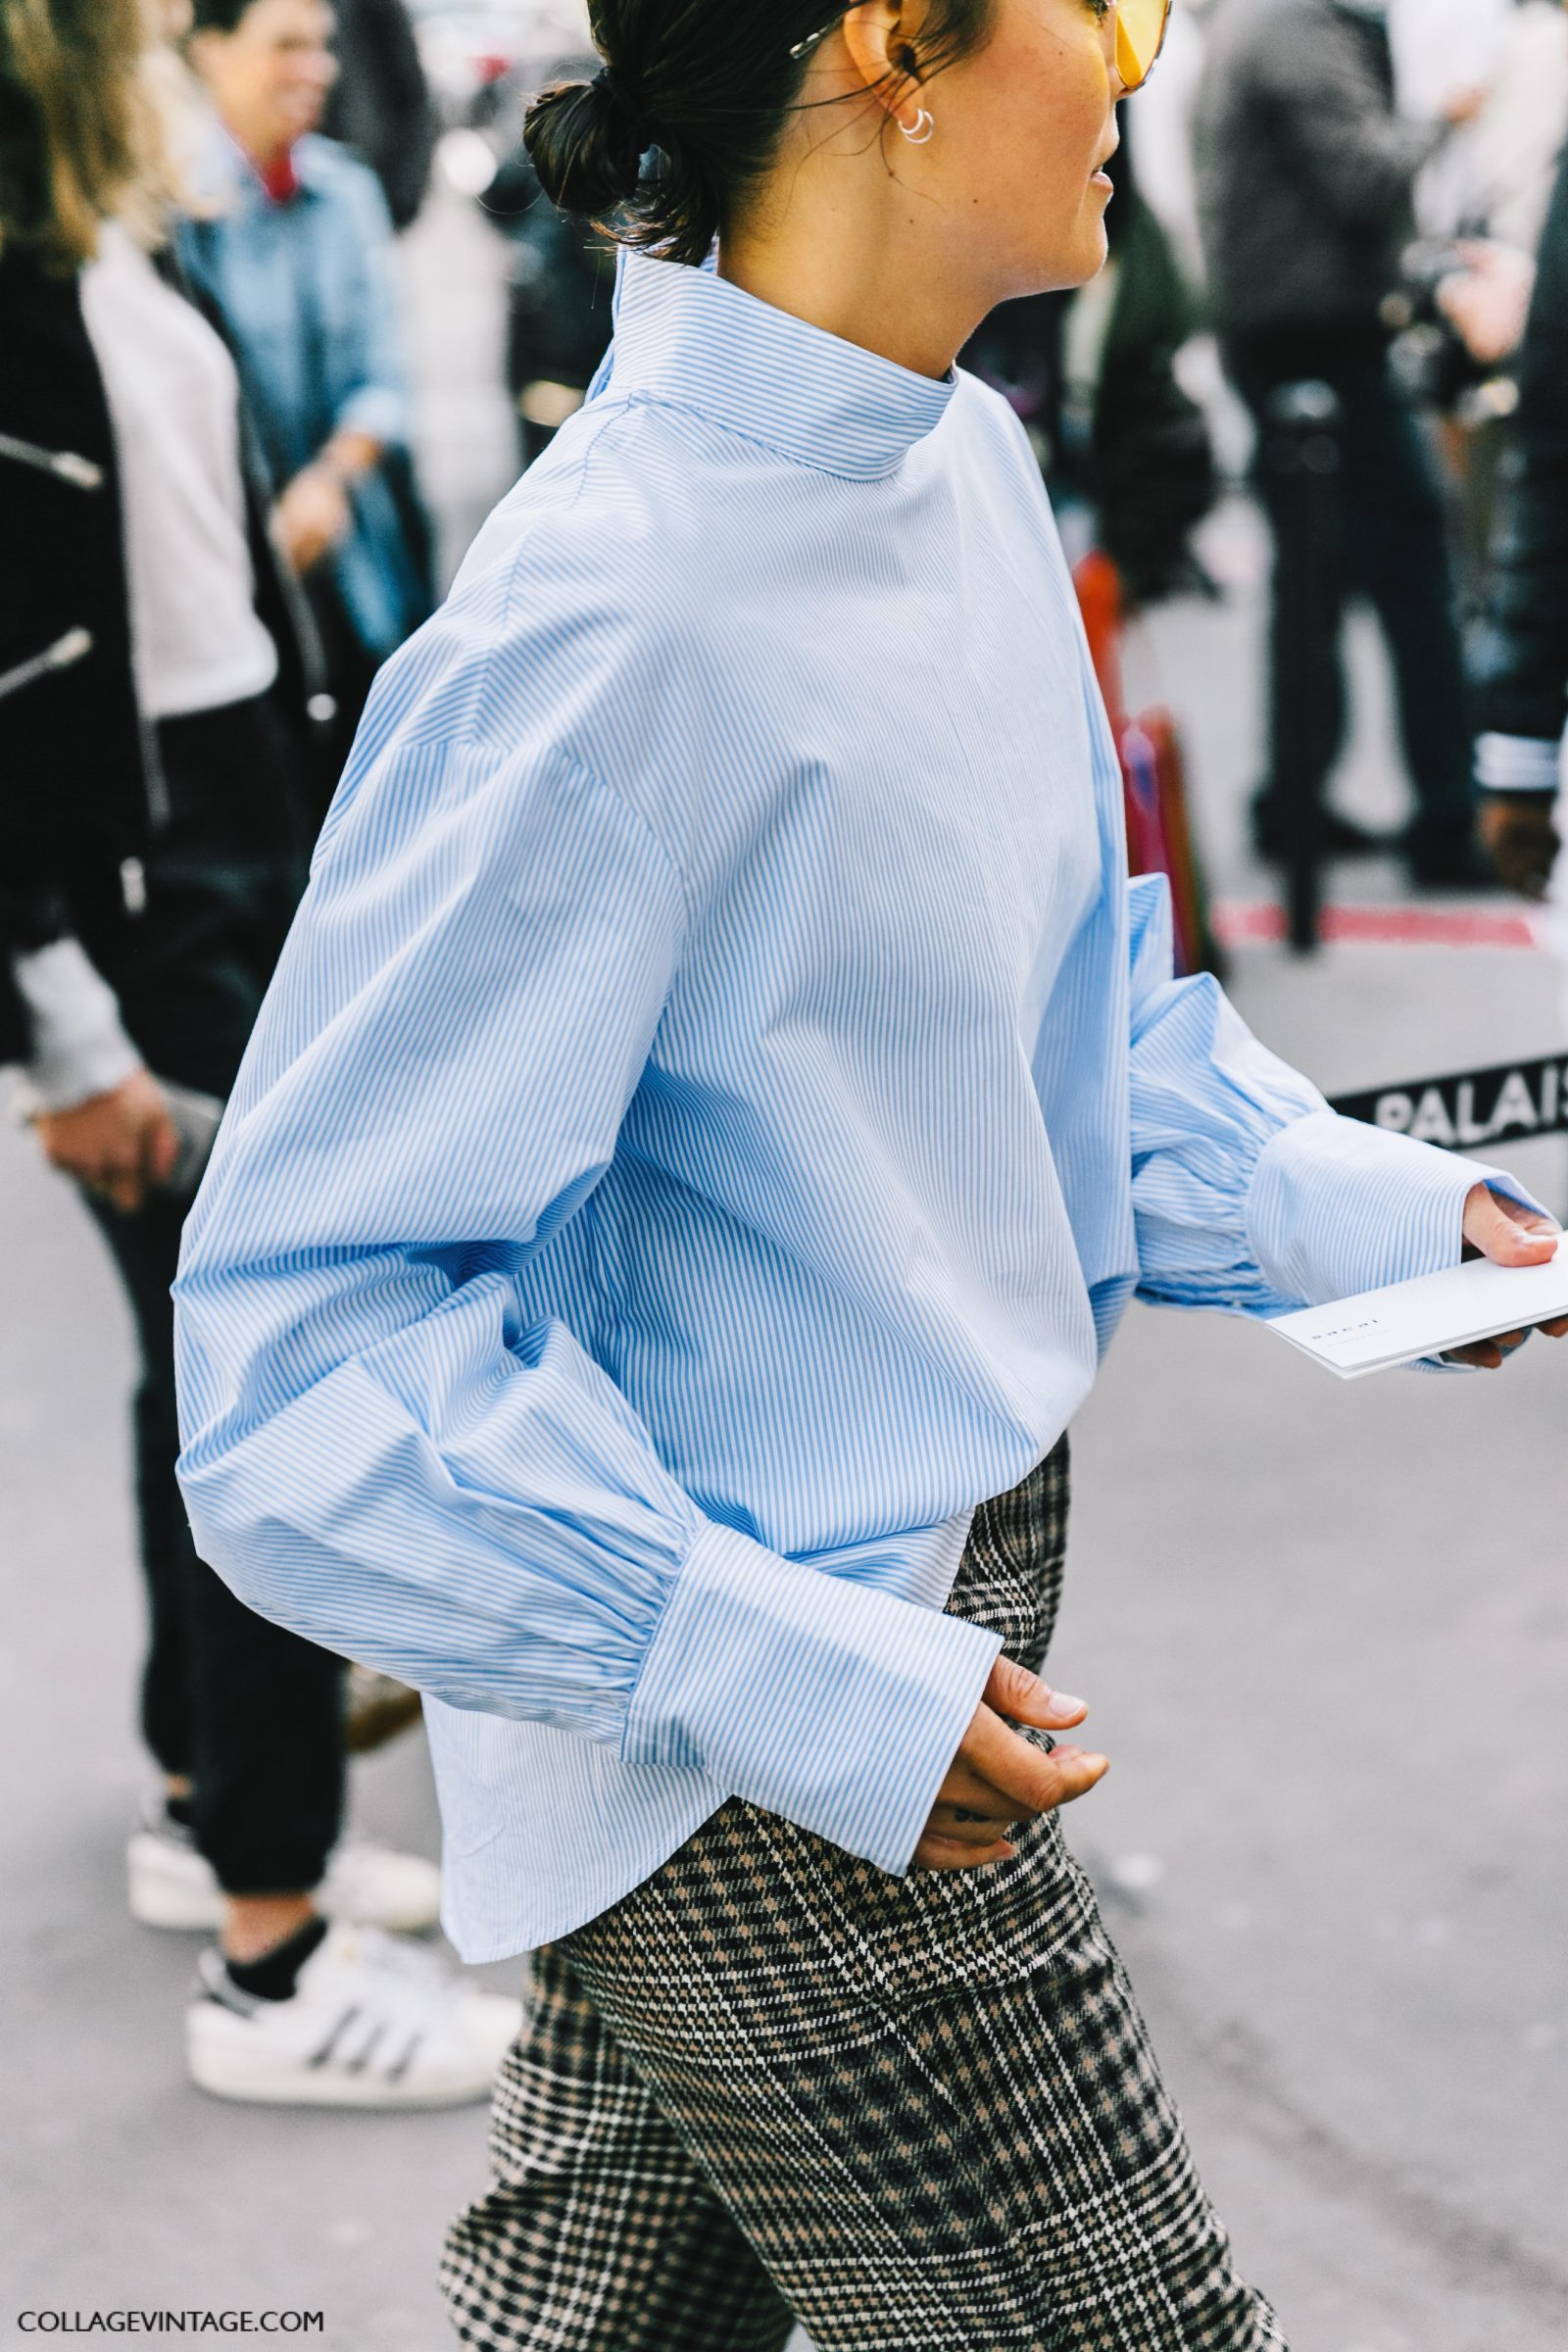 pfw-paris_fashion_week_ss17-street_style-outfits-collage_vintage-olympia_letan-hermes-stella_mccartney-sacai-54